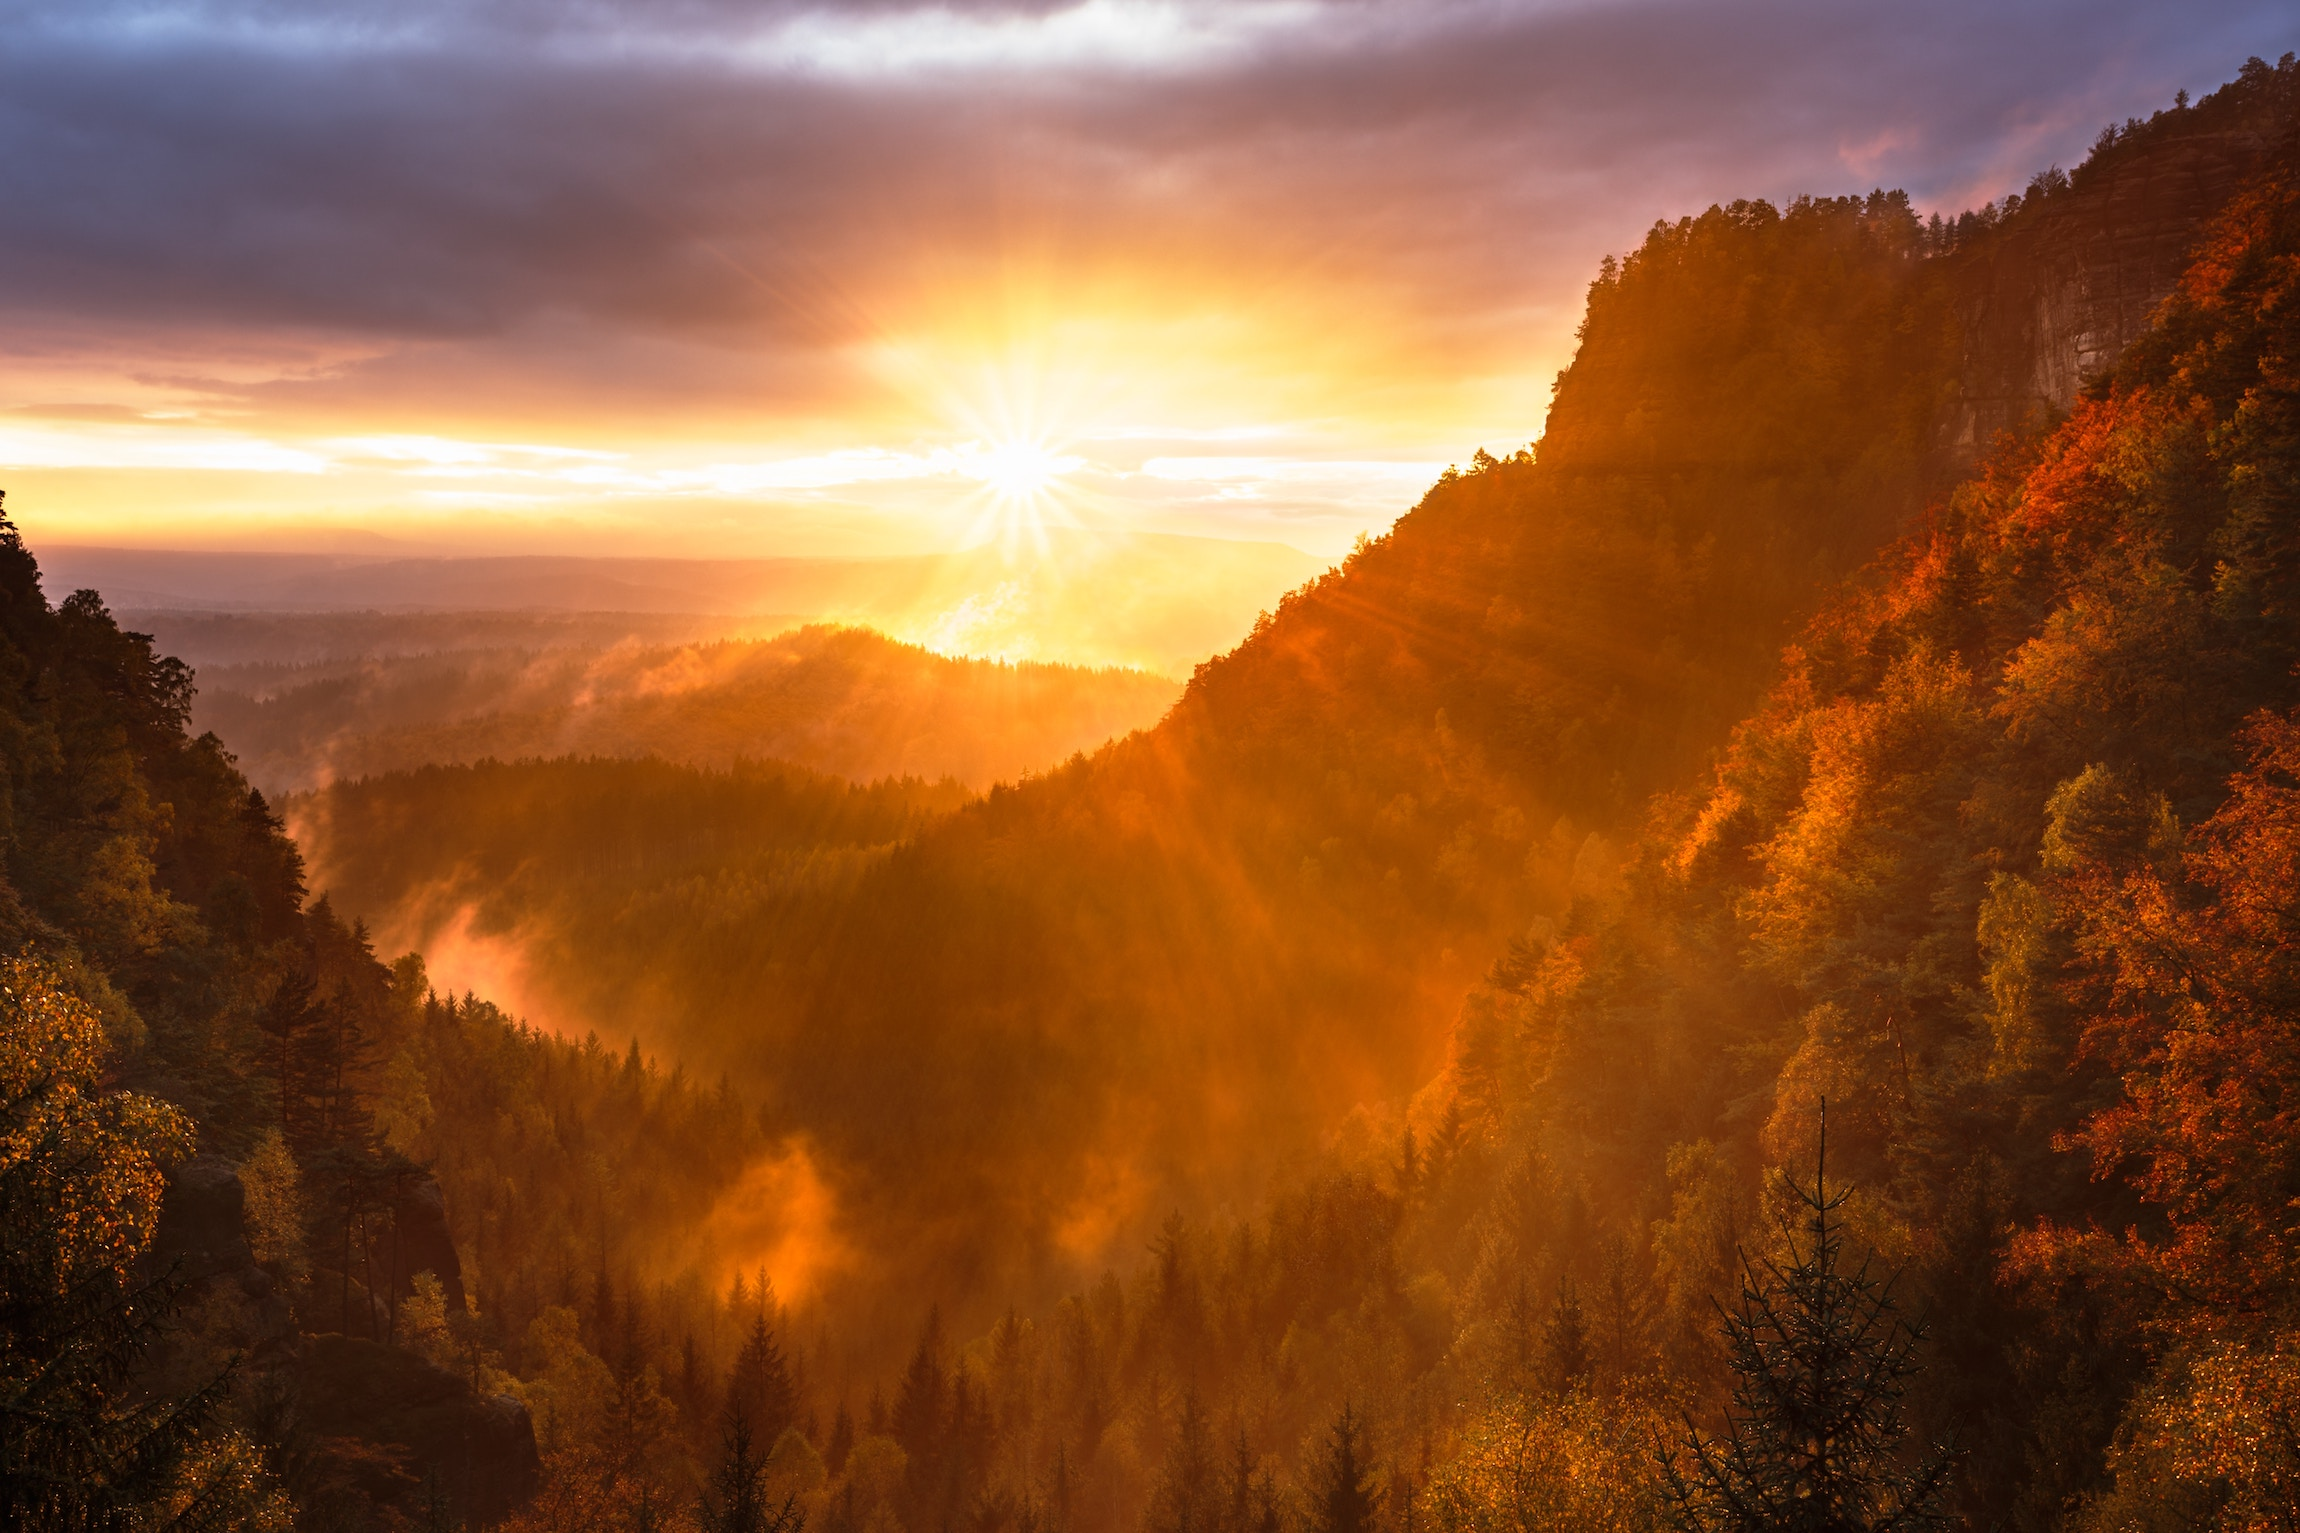 Orange sun with rays spread over a valley created by mountains